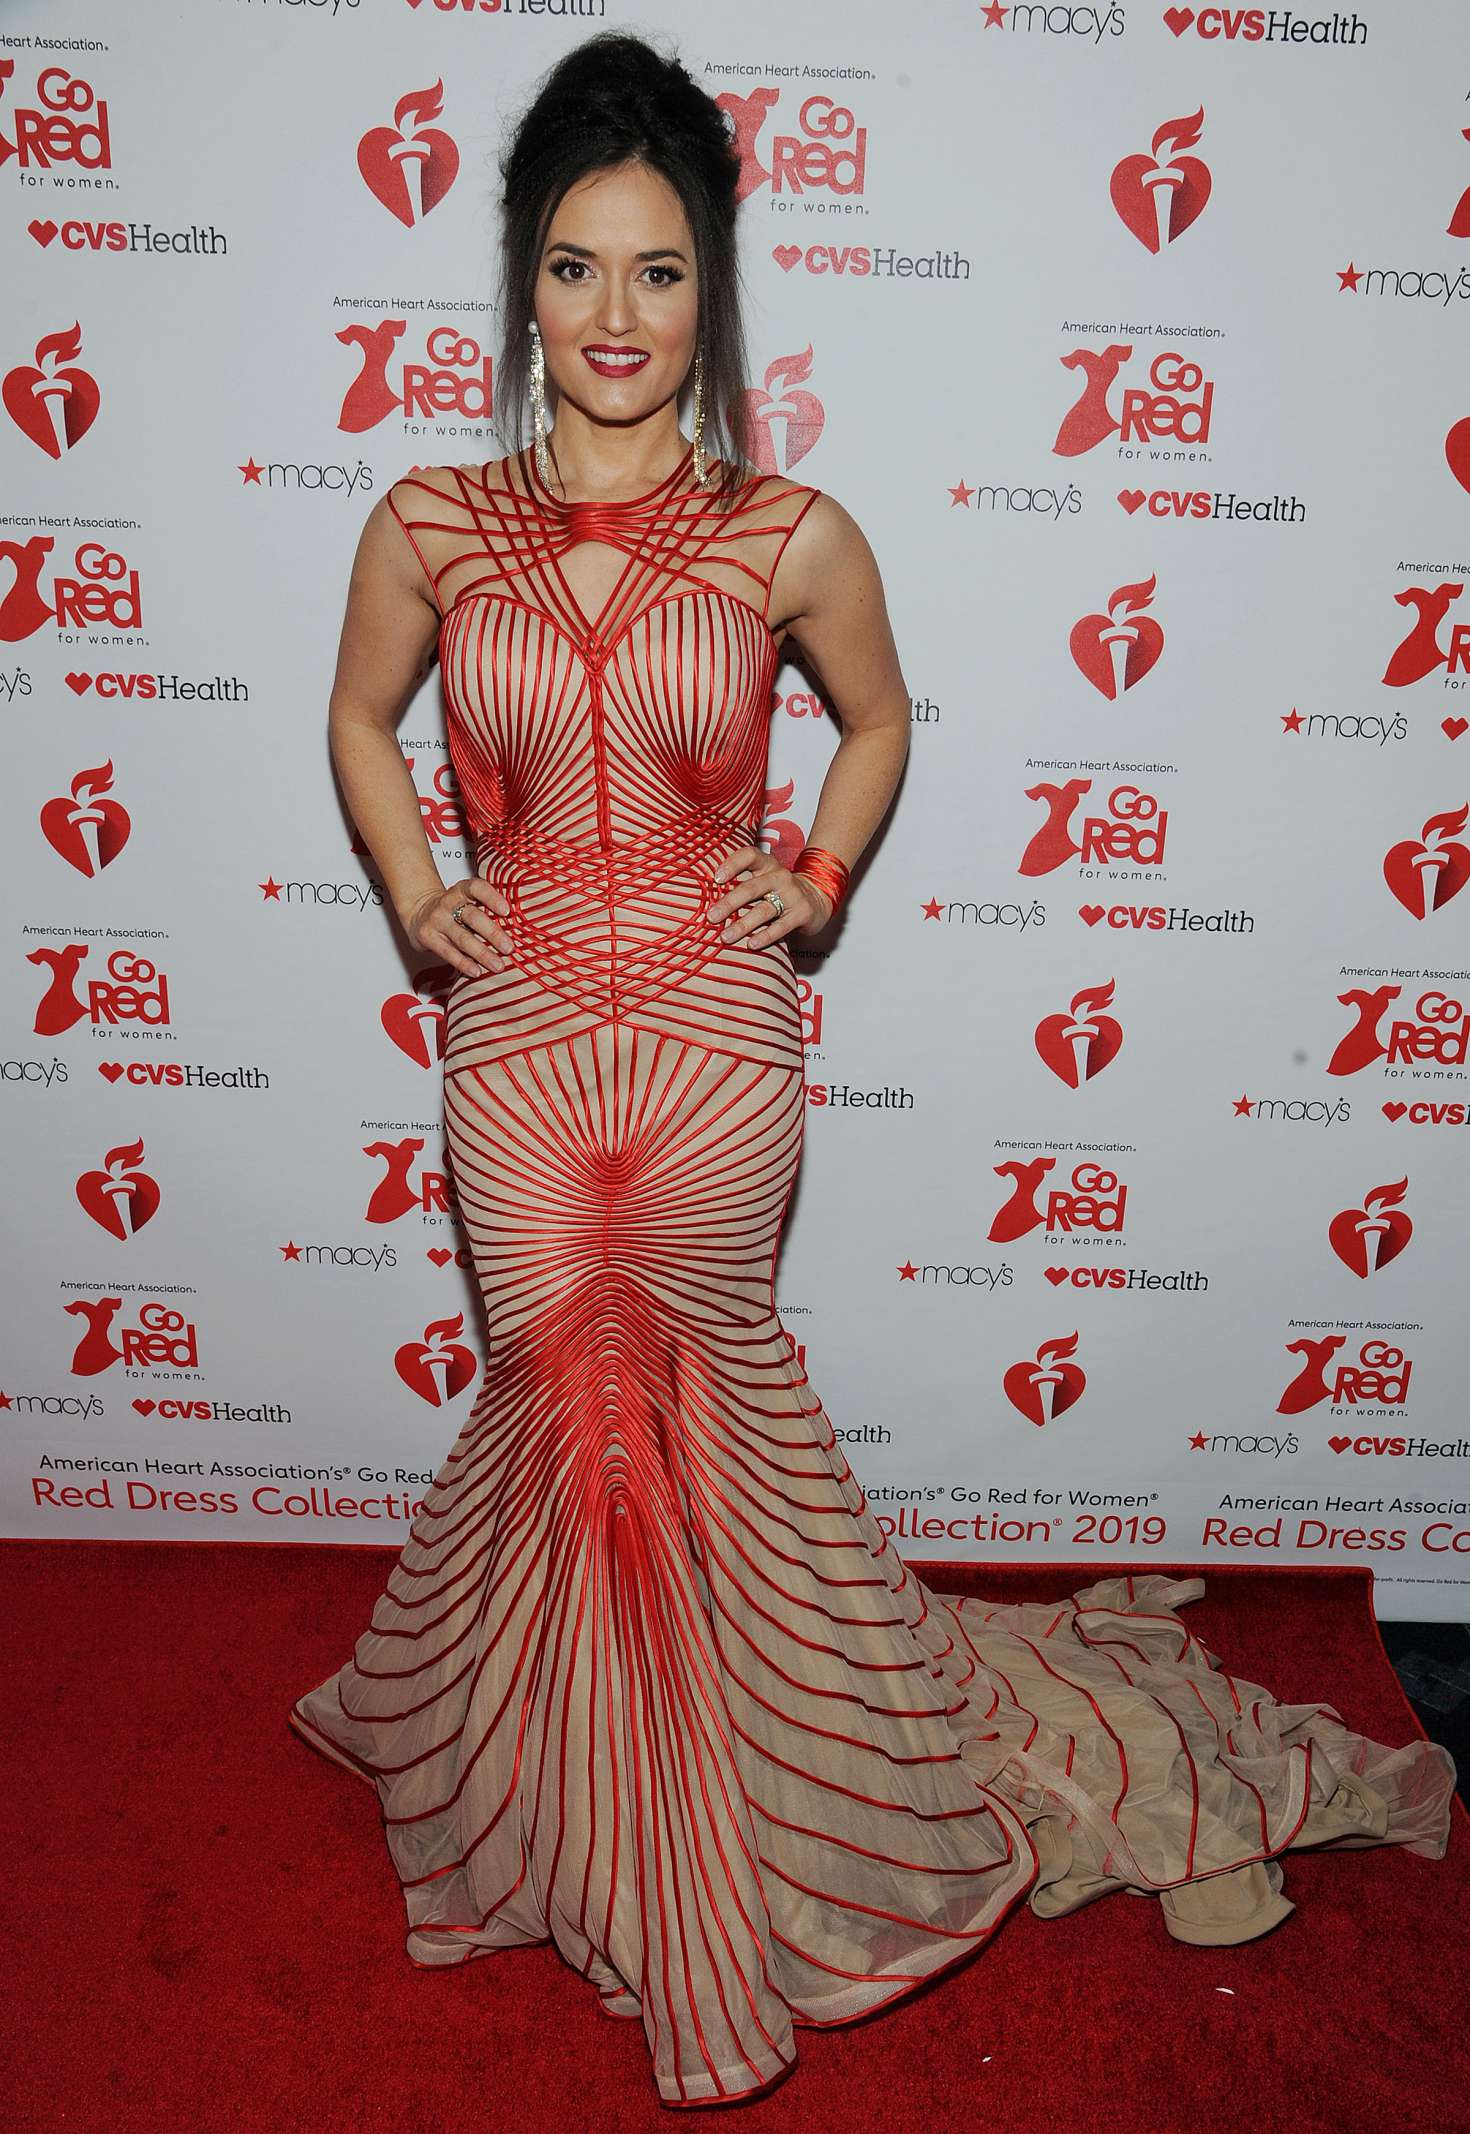 Danica McKellar 2019 : Danica McKellar: The American Heart Associations Go Red For Women Red Dress Collection 2019 -01